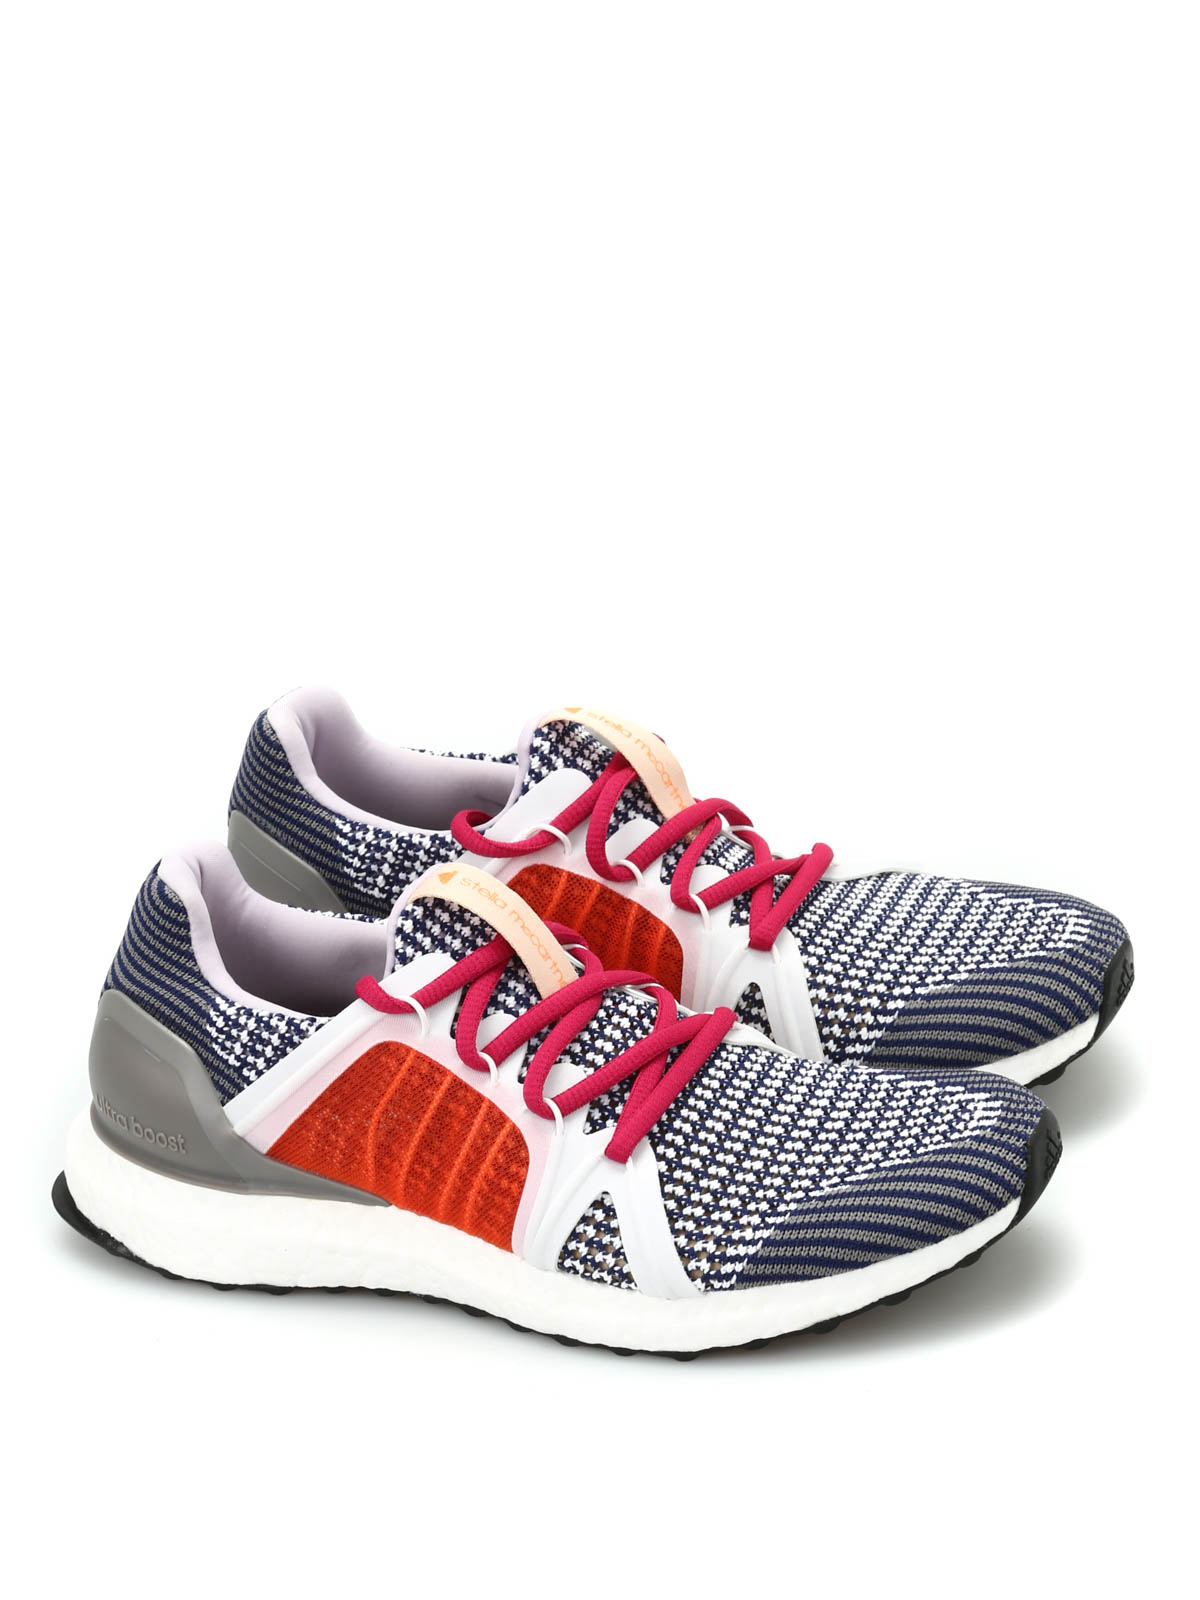 Stella Mccartney Adidas Shoes Boost